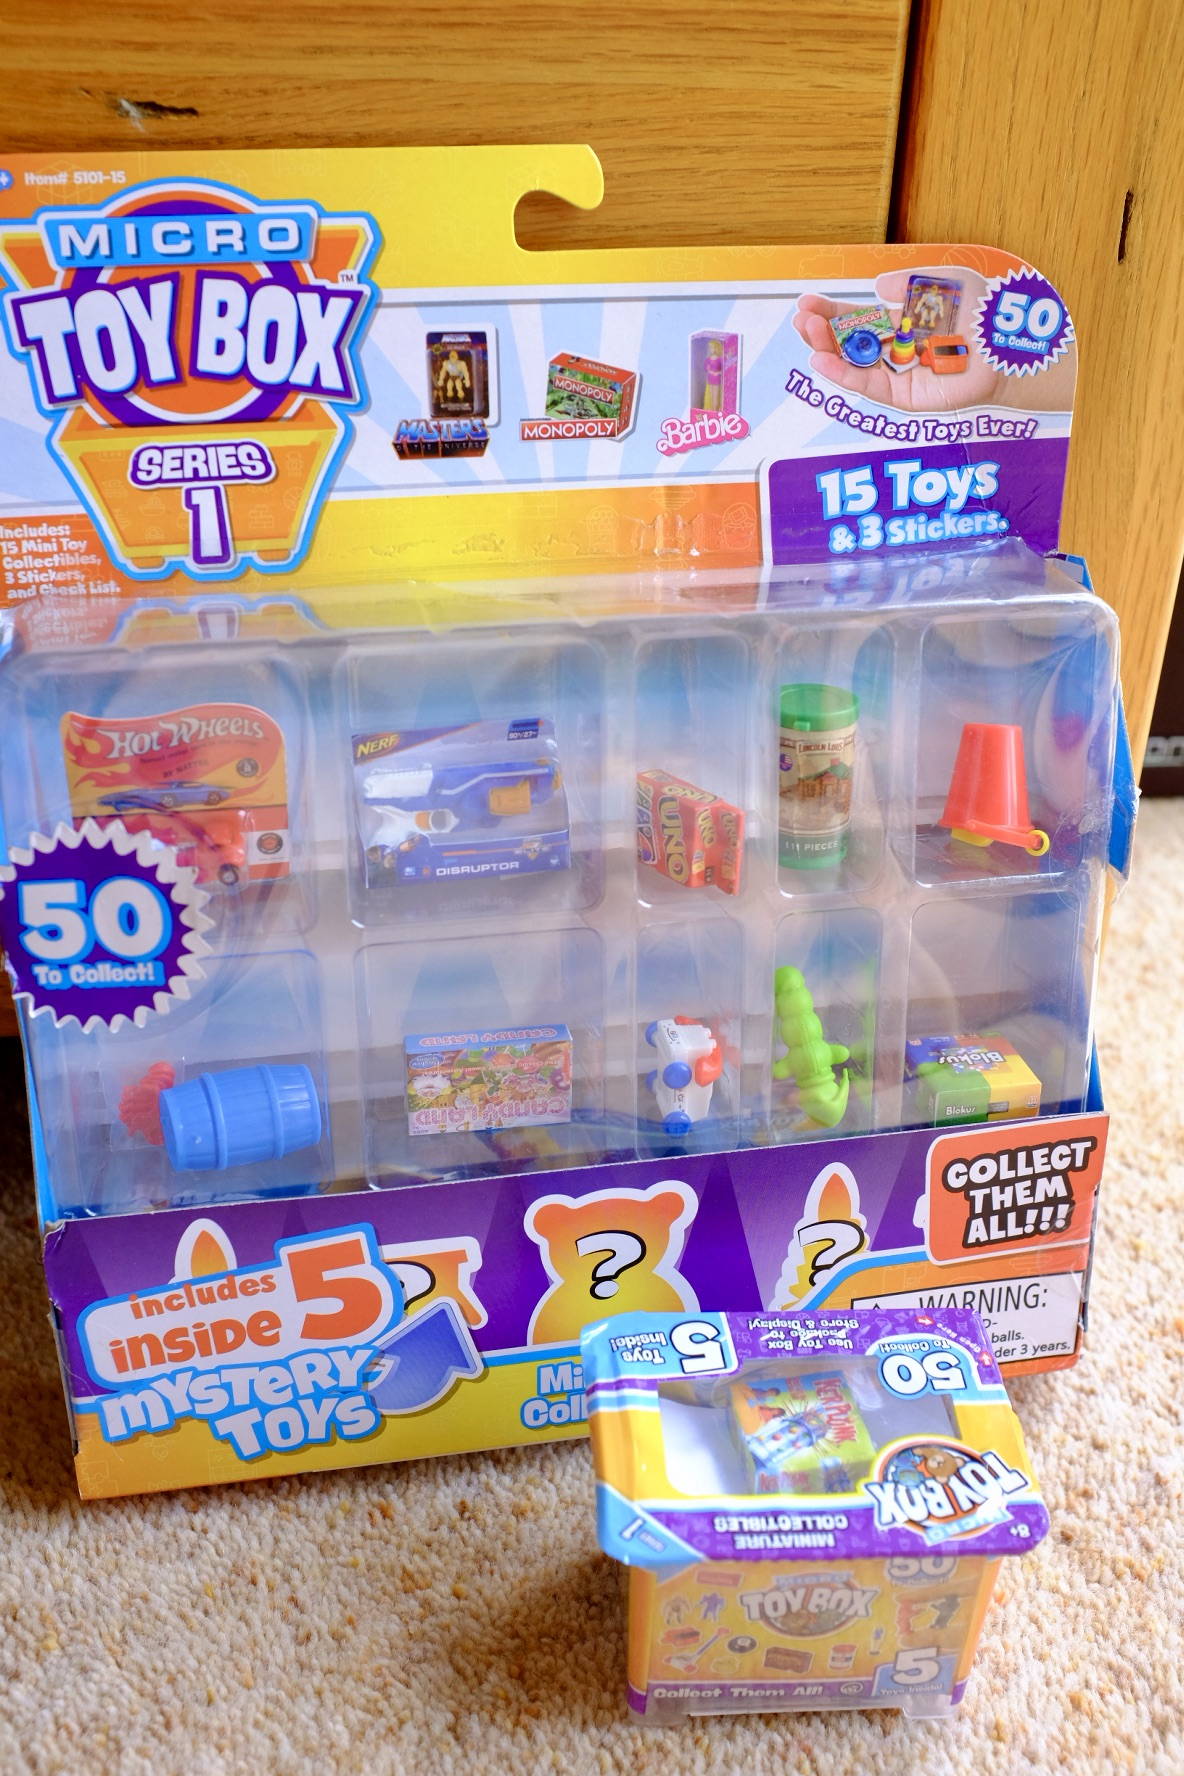 Micro Toy Box 15 and 5 packs